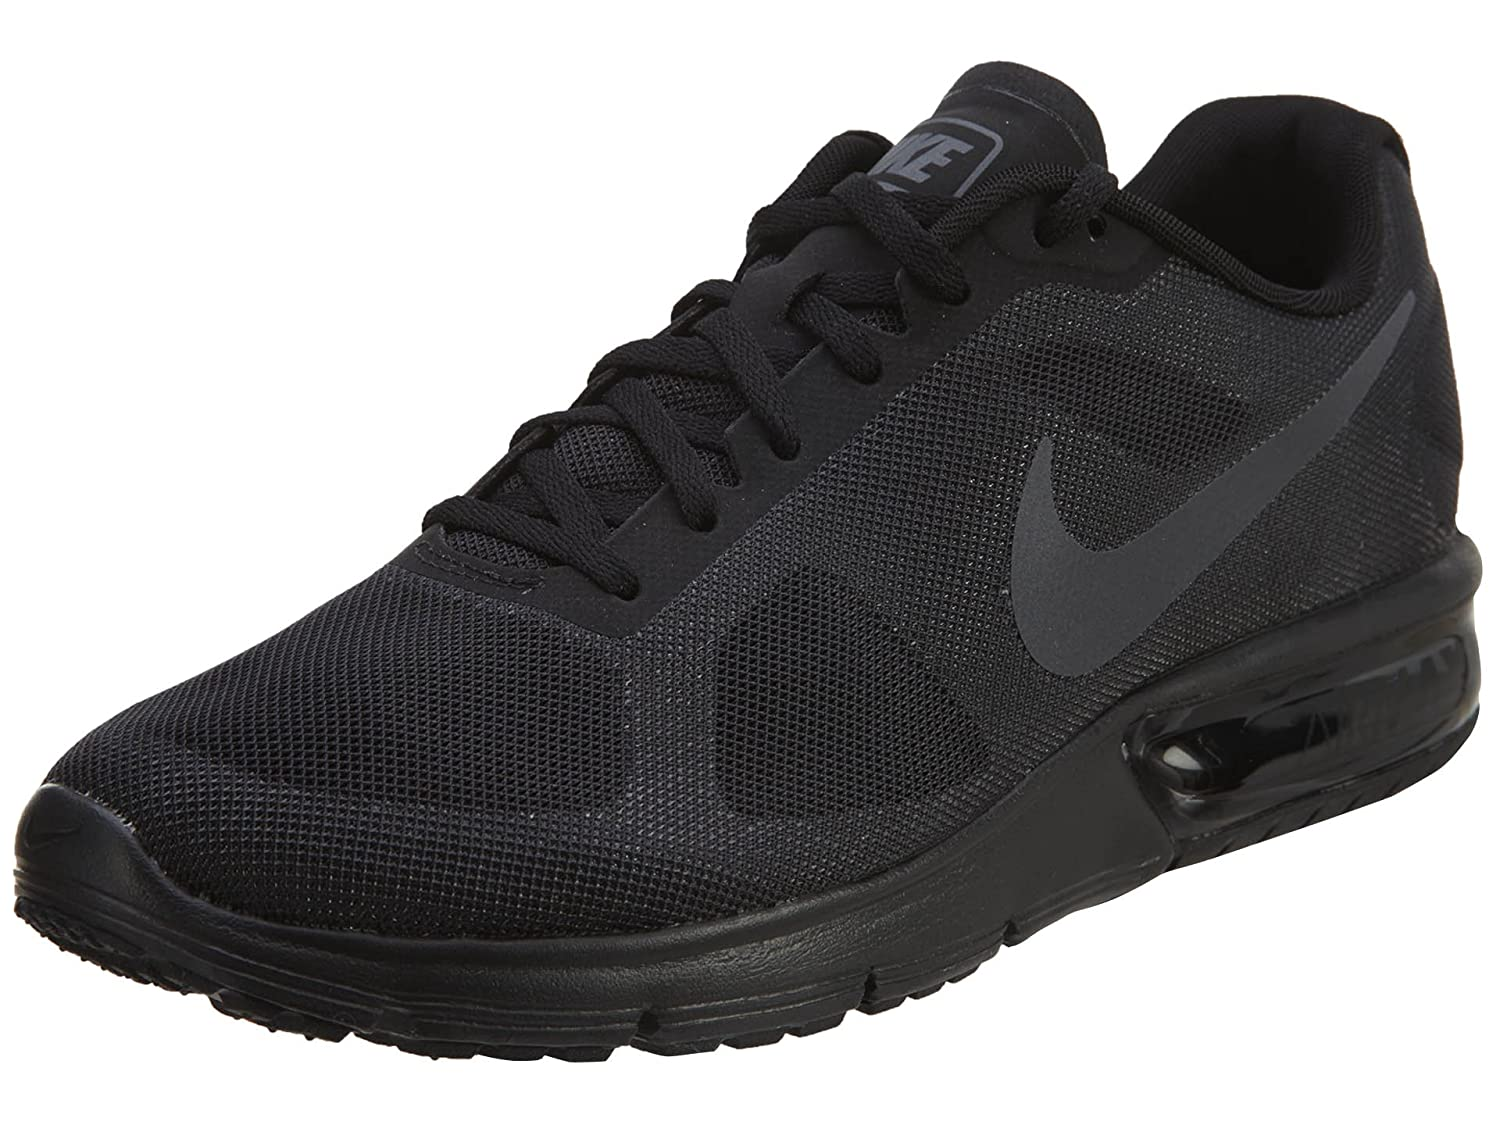 NIKE Men's Air Max Sequent 2 Running Shoe B00709M2NM 12 D(M) US|Black/Dark Grey